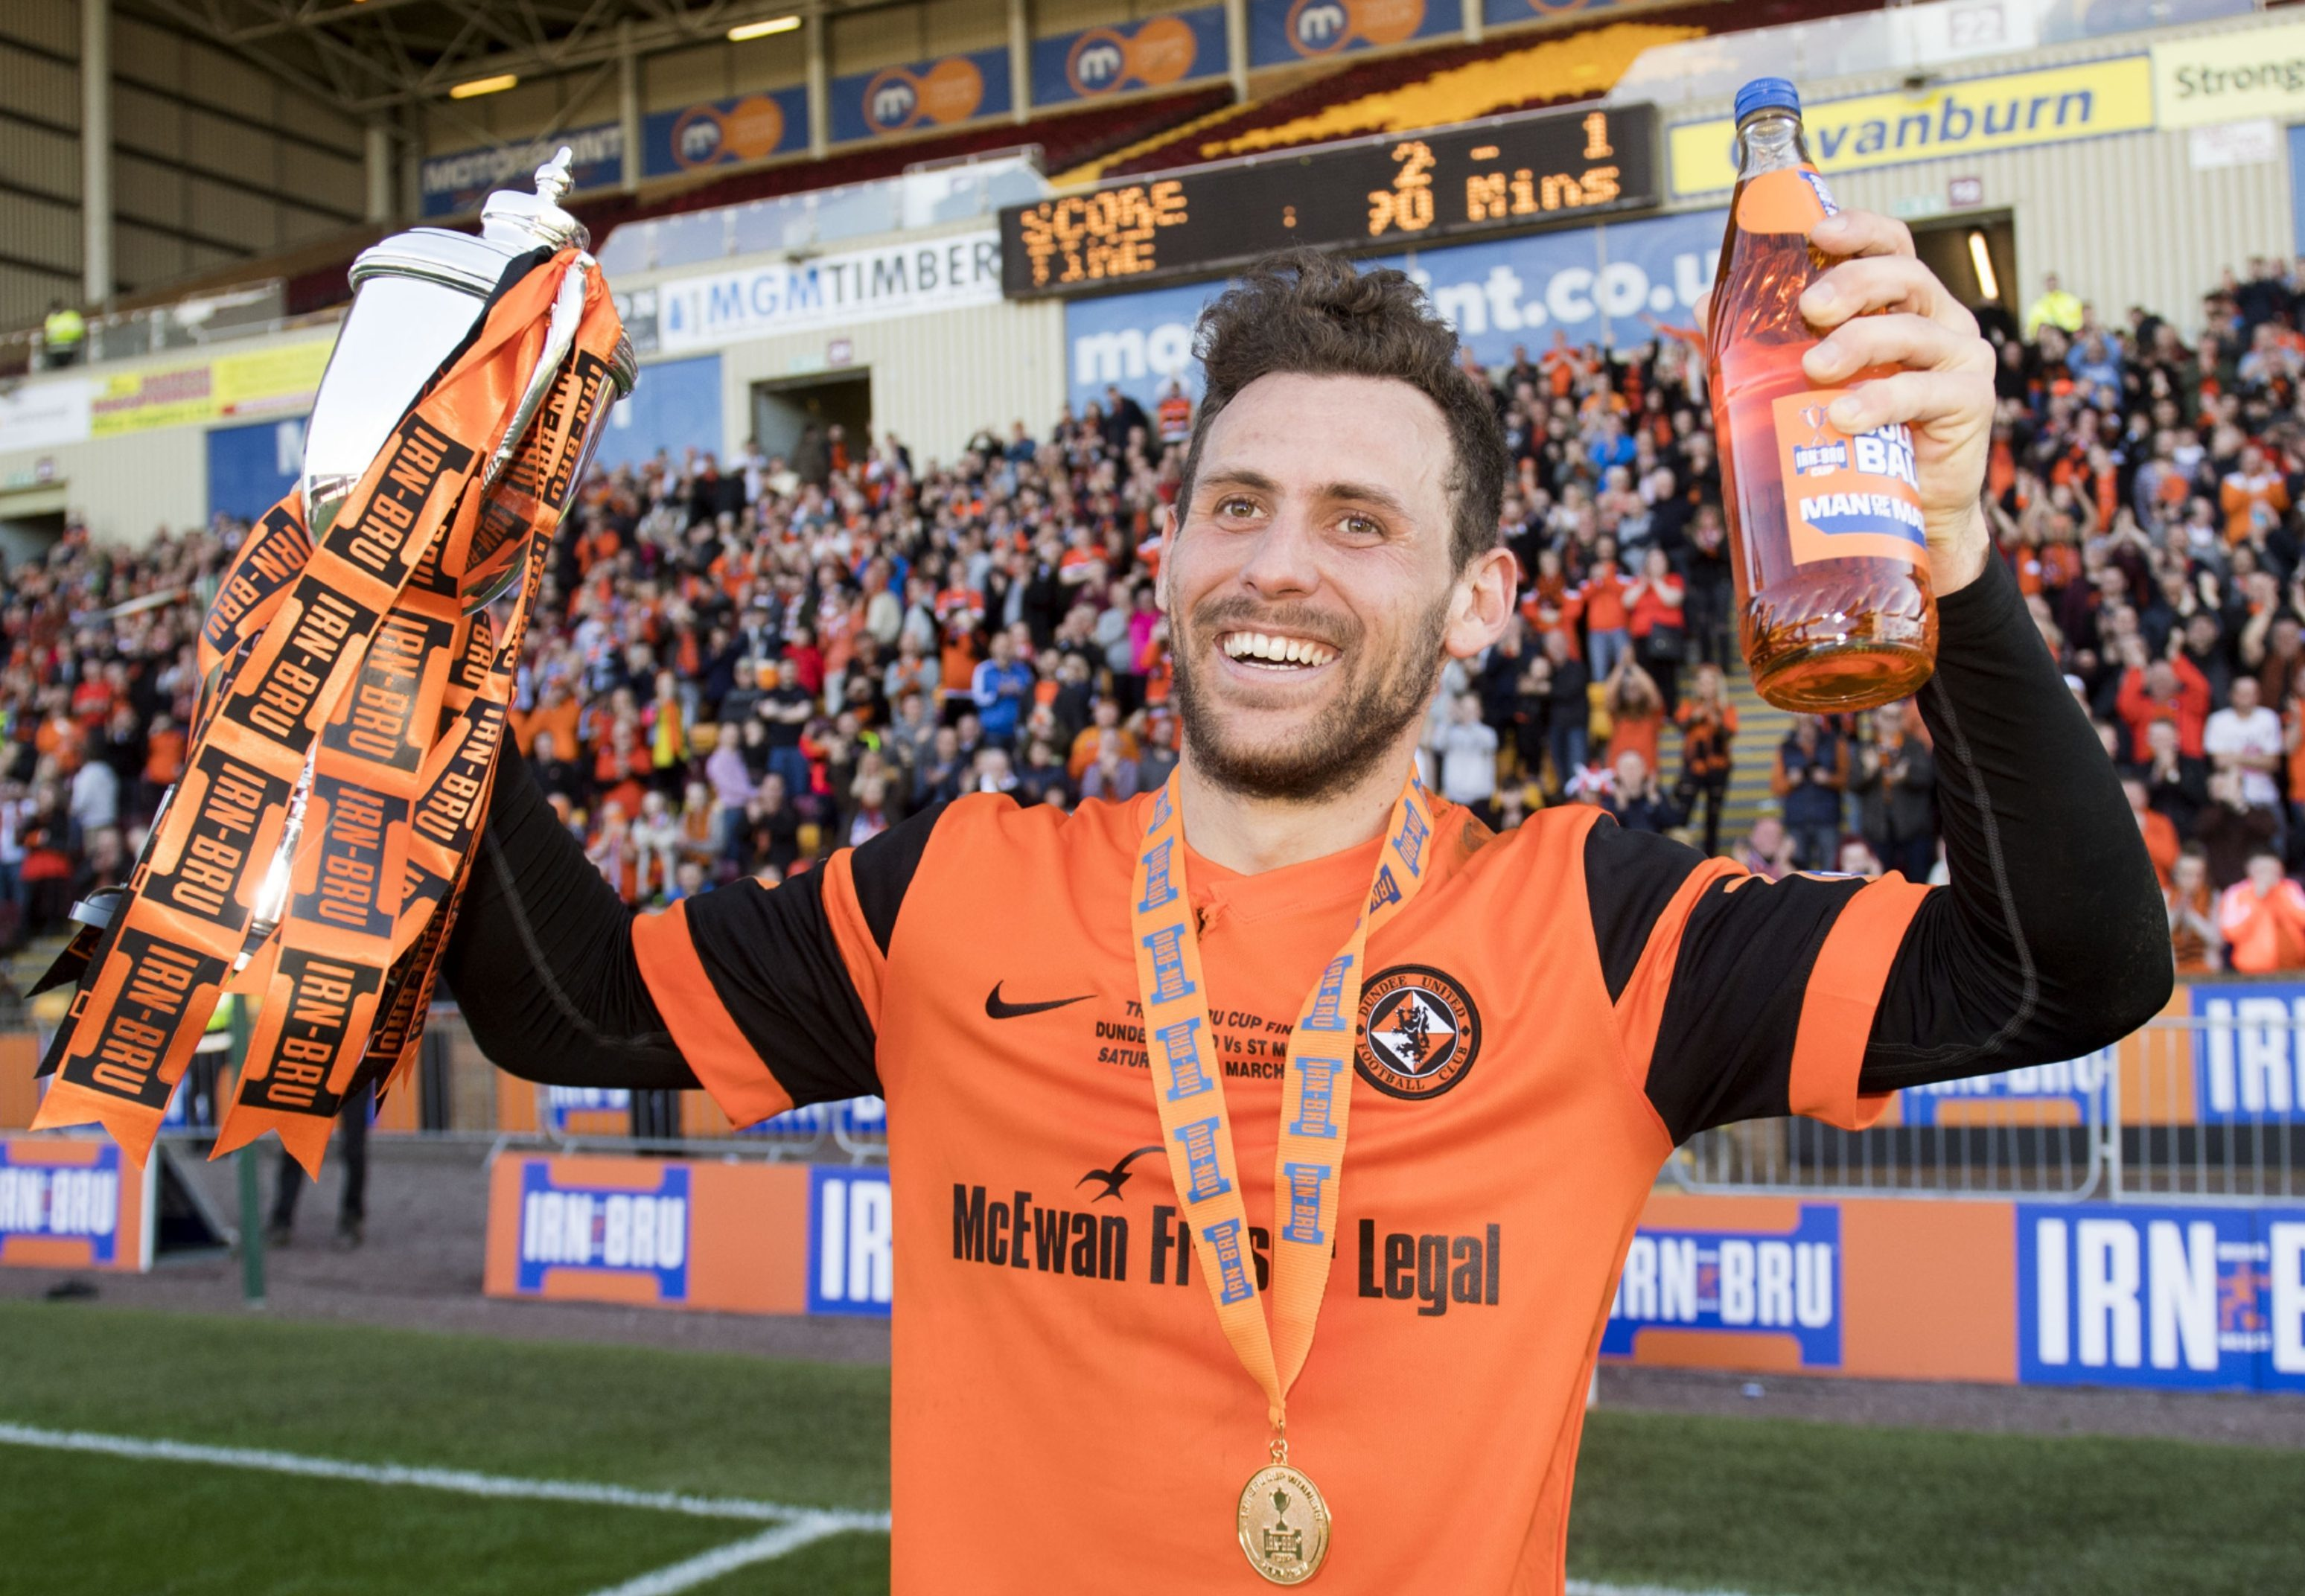 Tony Andreu celebrates with the cup.